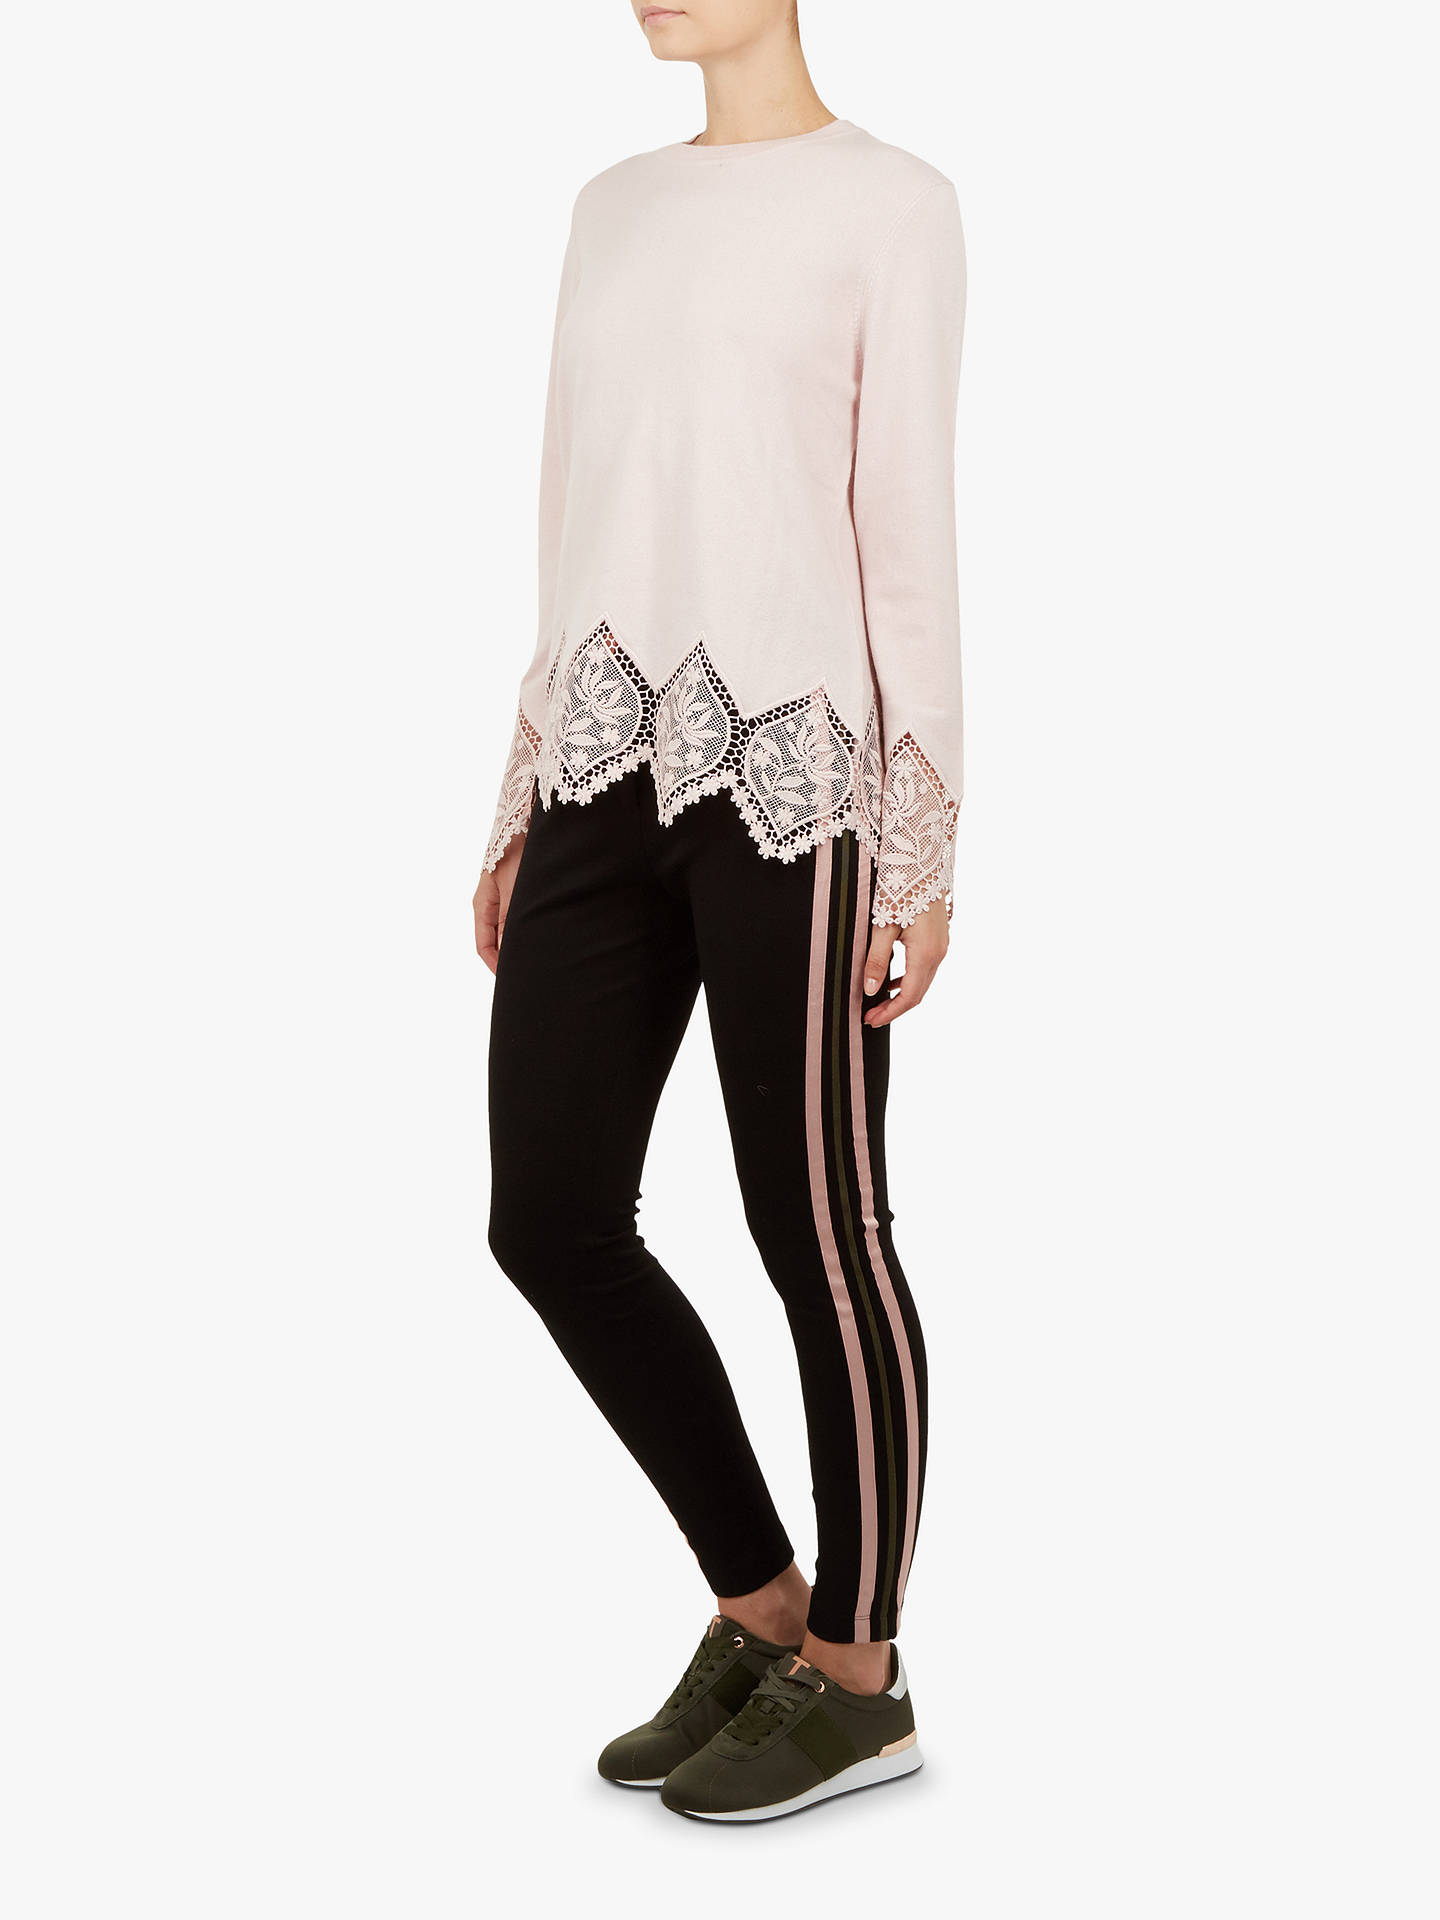 BuyTed Baker Aylex Lace Detail Jumper, Pink/Nude, 5 Online at johnlewis.com